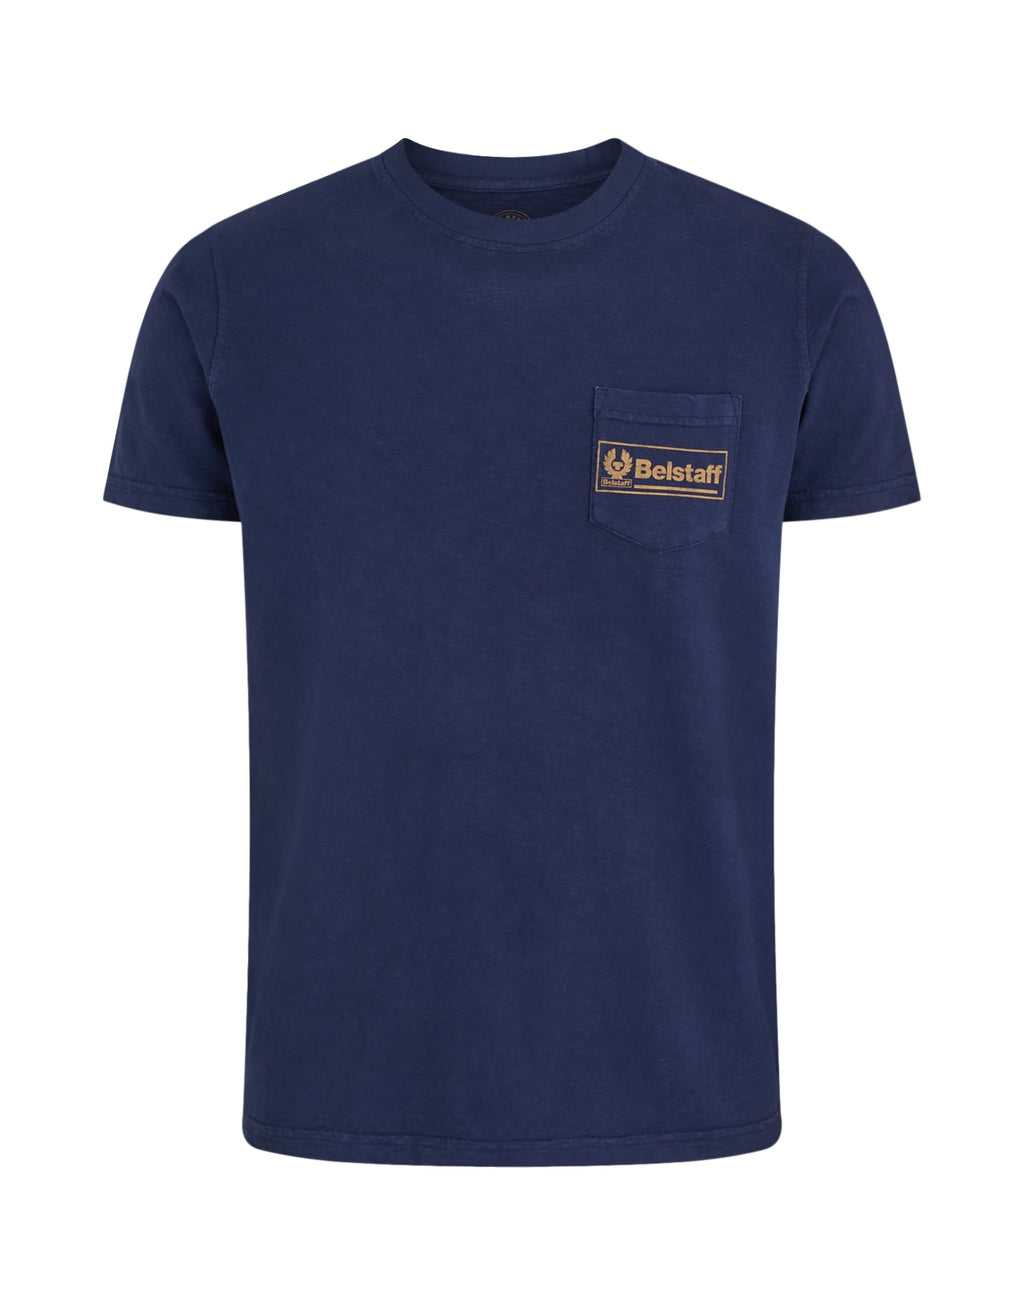 Belstaff Lewis Men's T-Shirt - Bright Navy